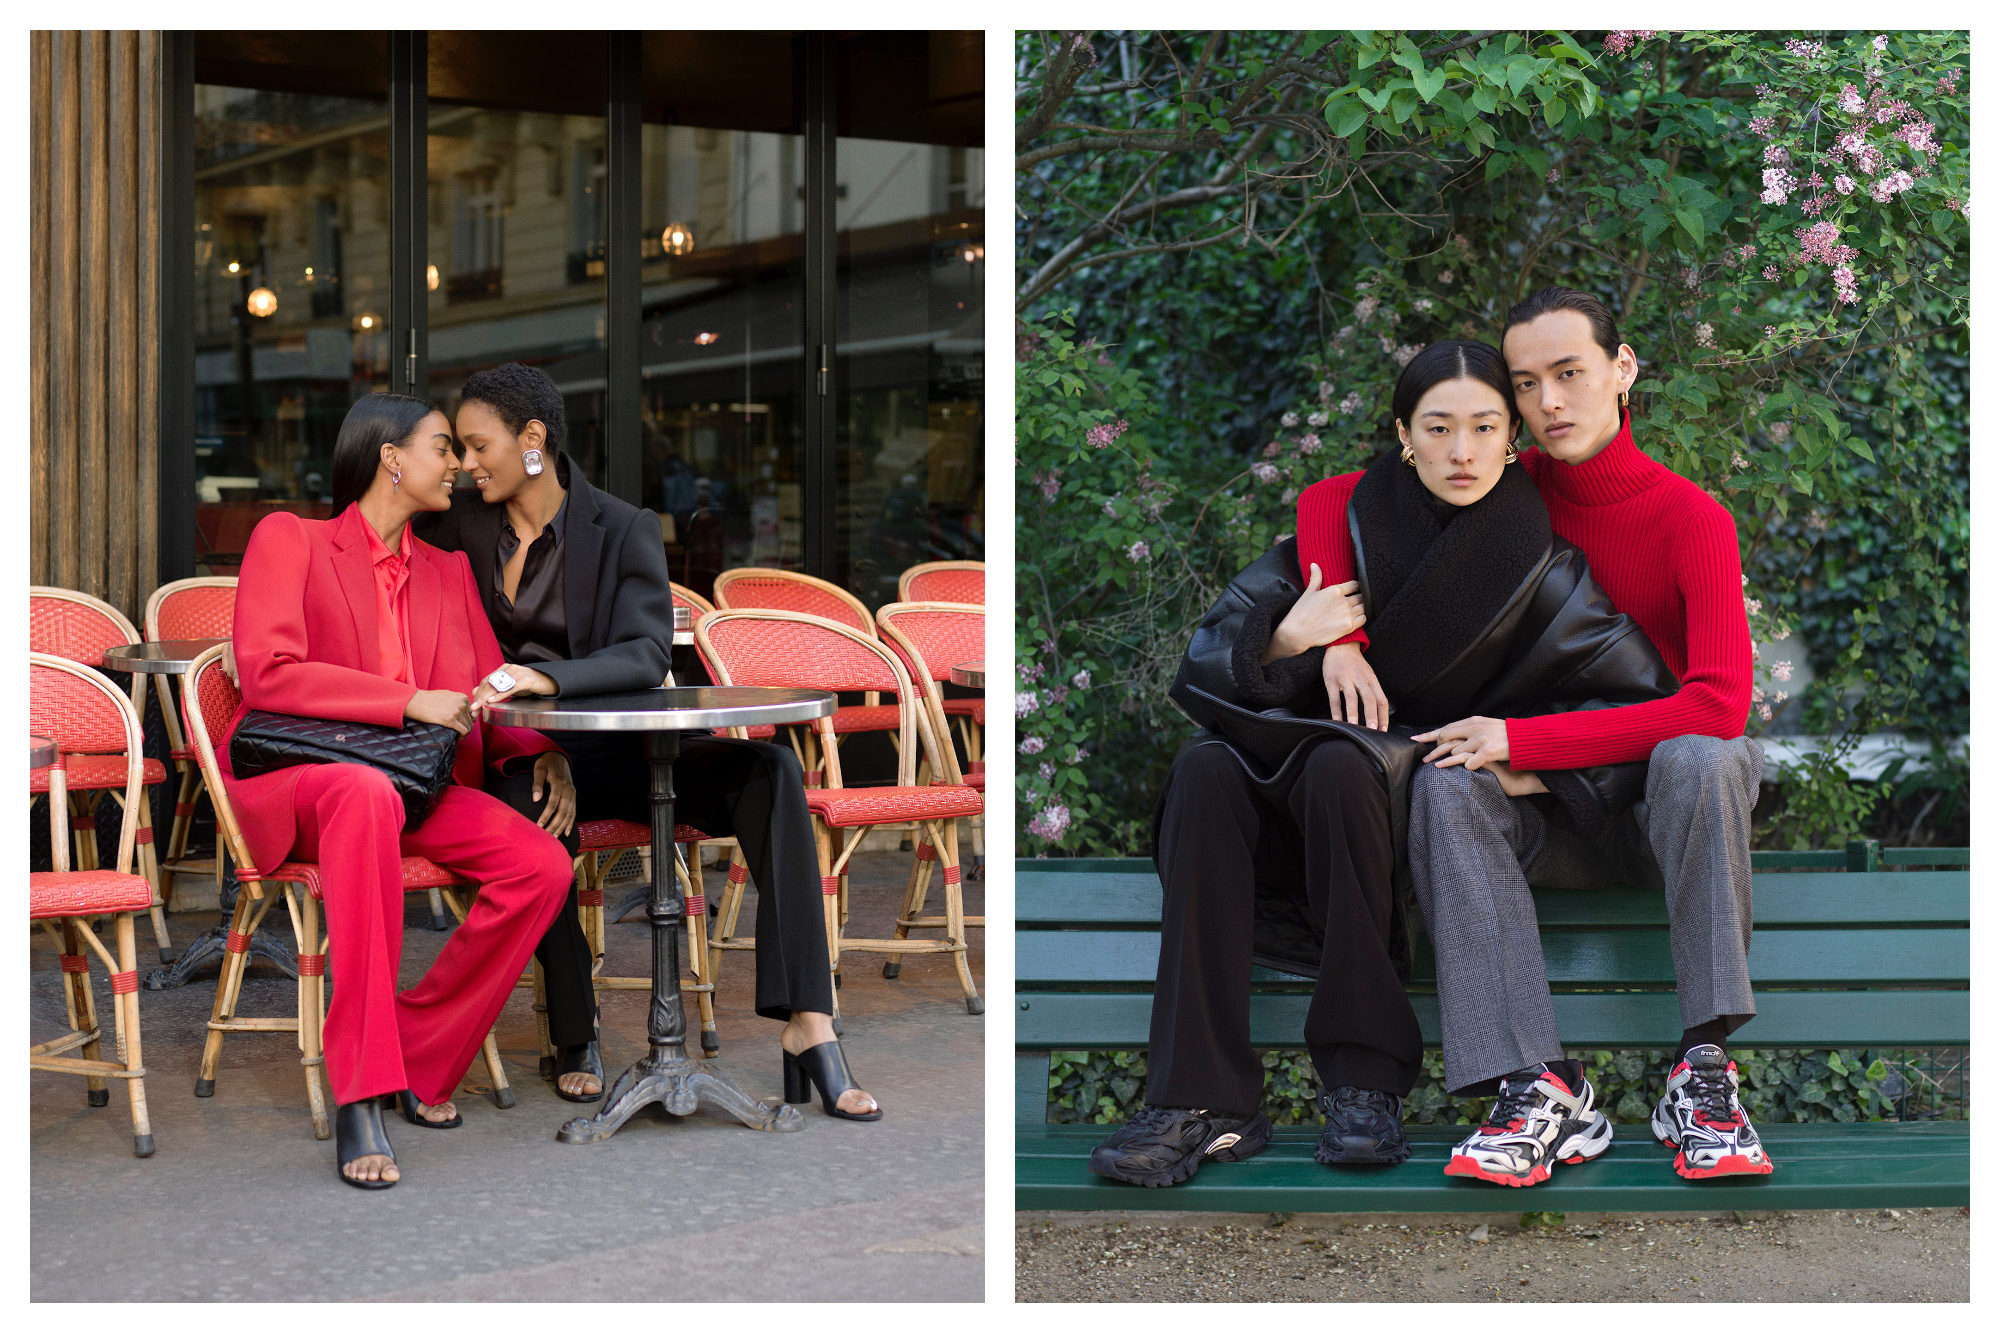 Two women at a Parisian bistro wearing red and black suits (left) and a man and woman sat on a bench wearing red and black from Paris Fashion Week by Balenciaga.